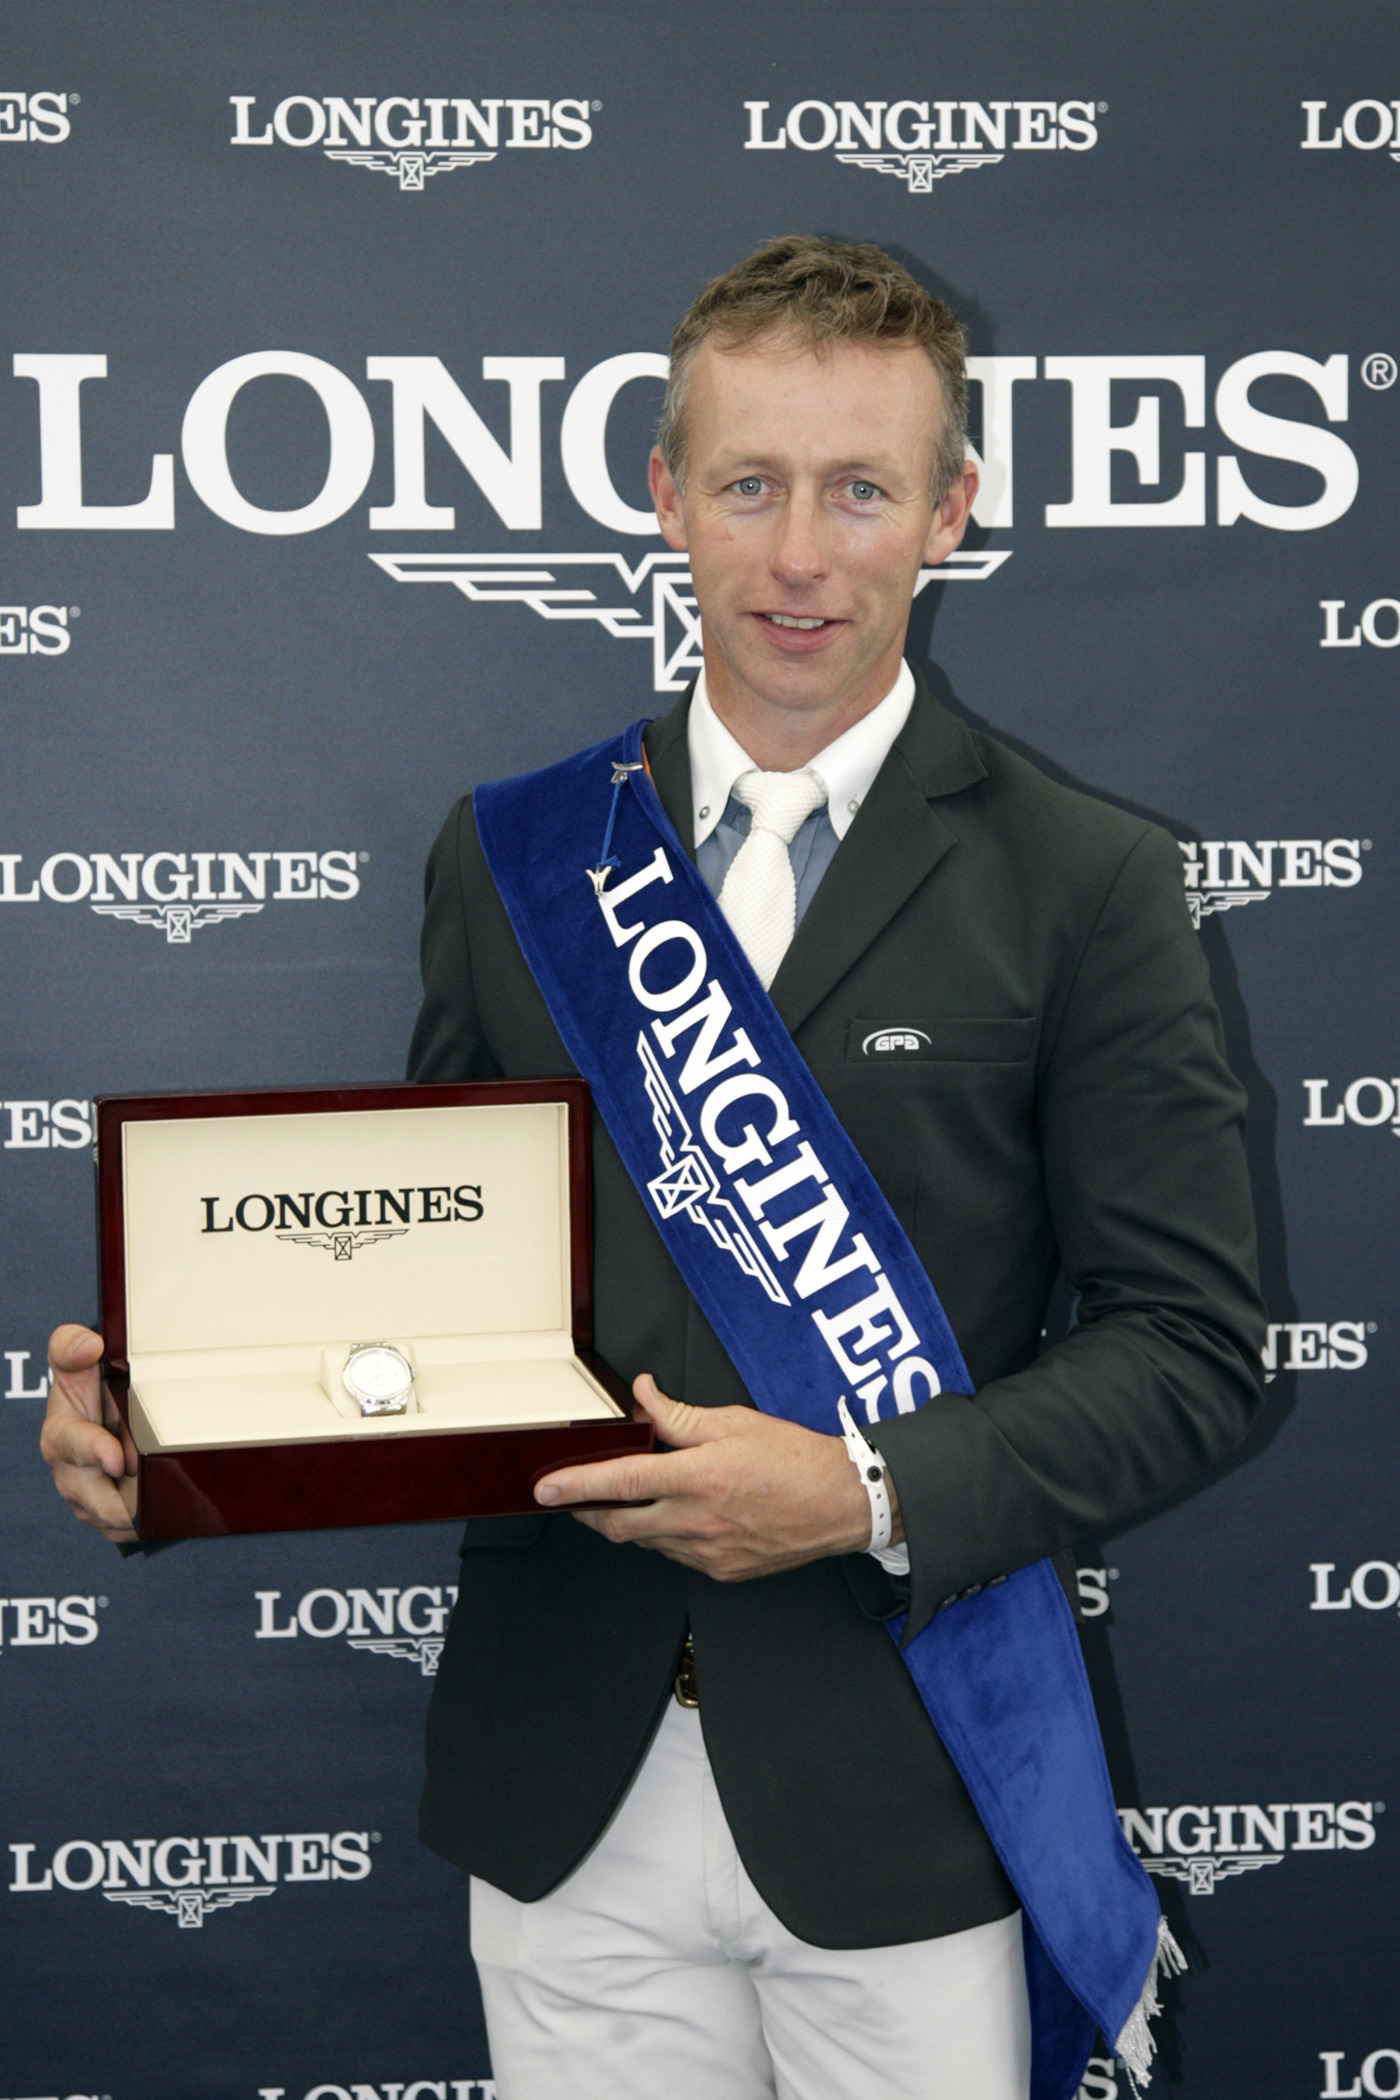 Longines Show Jumping Event: Longines Press Award for Elegance 2012 6